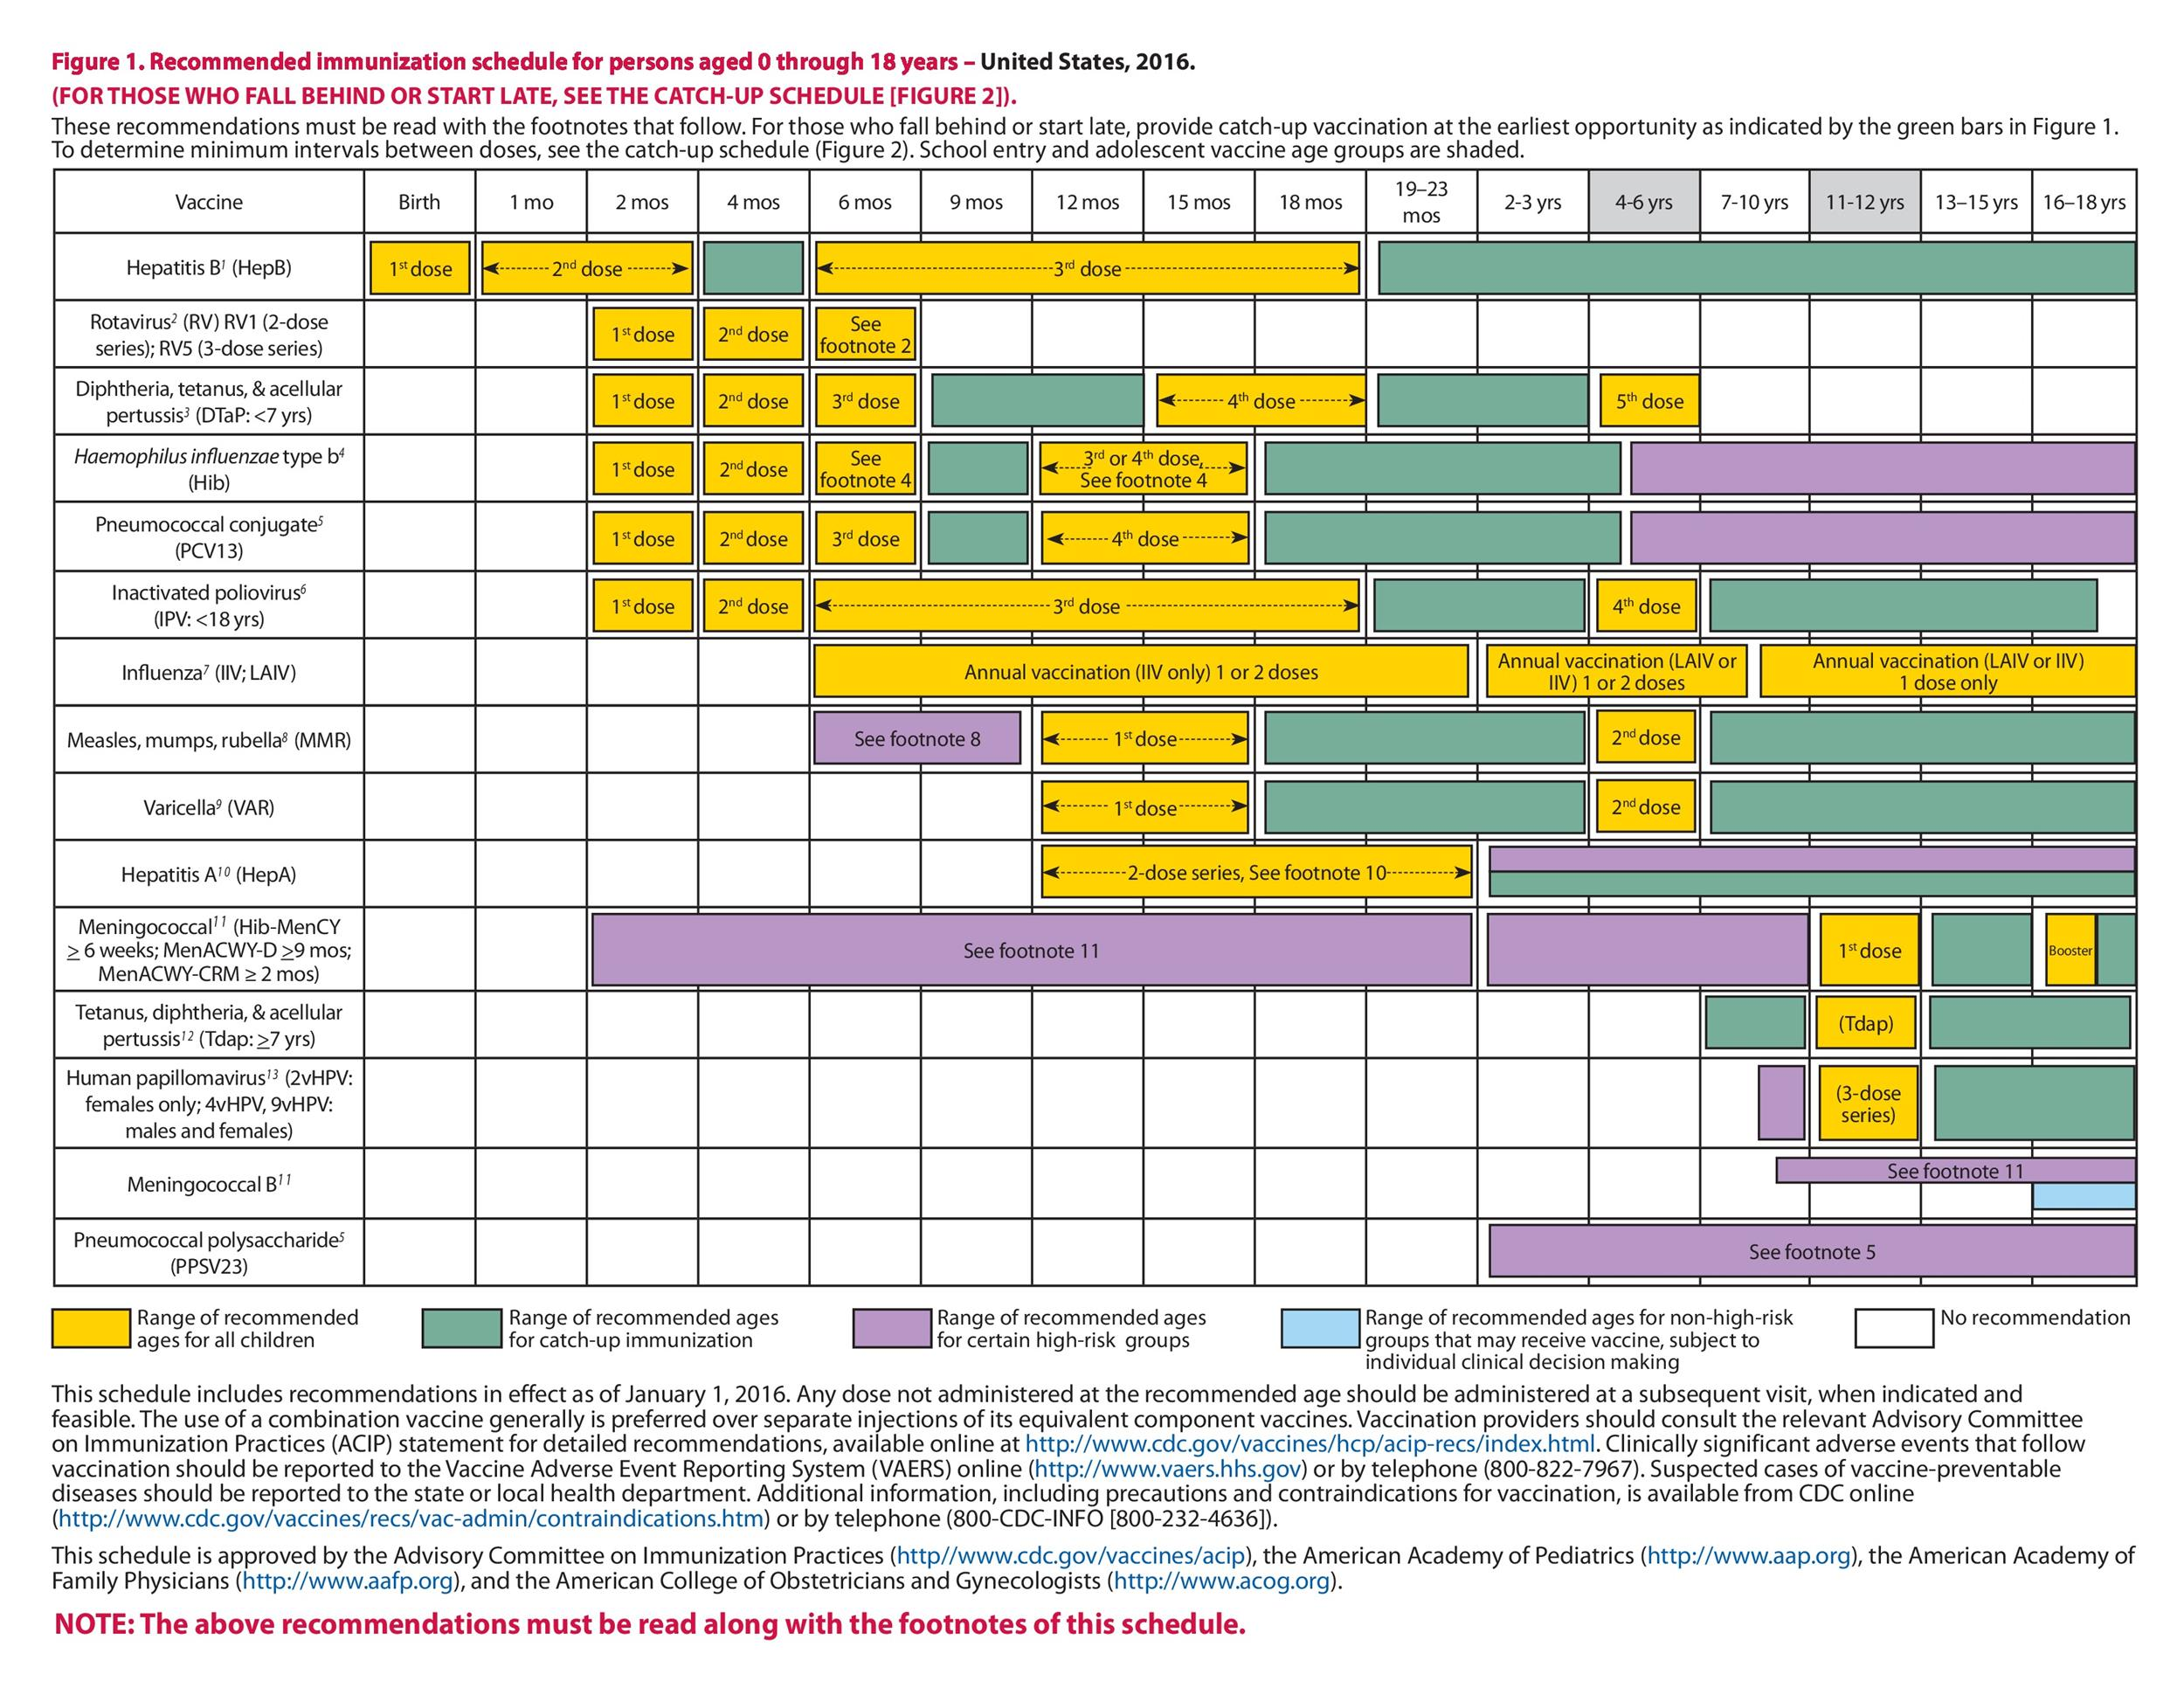 image regarding Immunization Cards Printable identified as 38 Instructive Immunization Vaccination Schedules [PDF] ᐅ